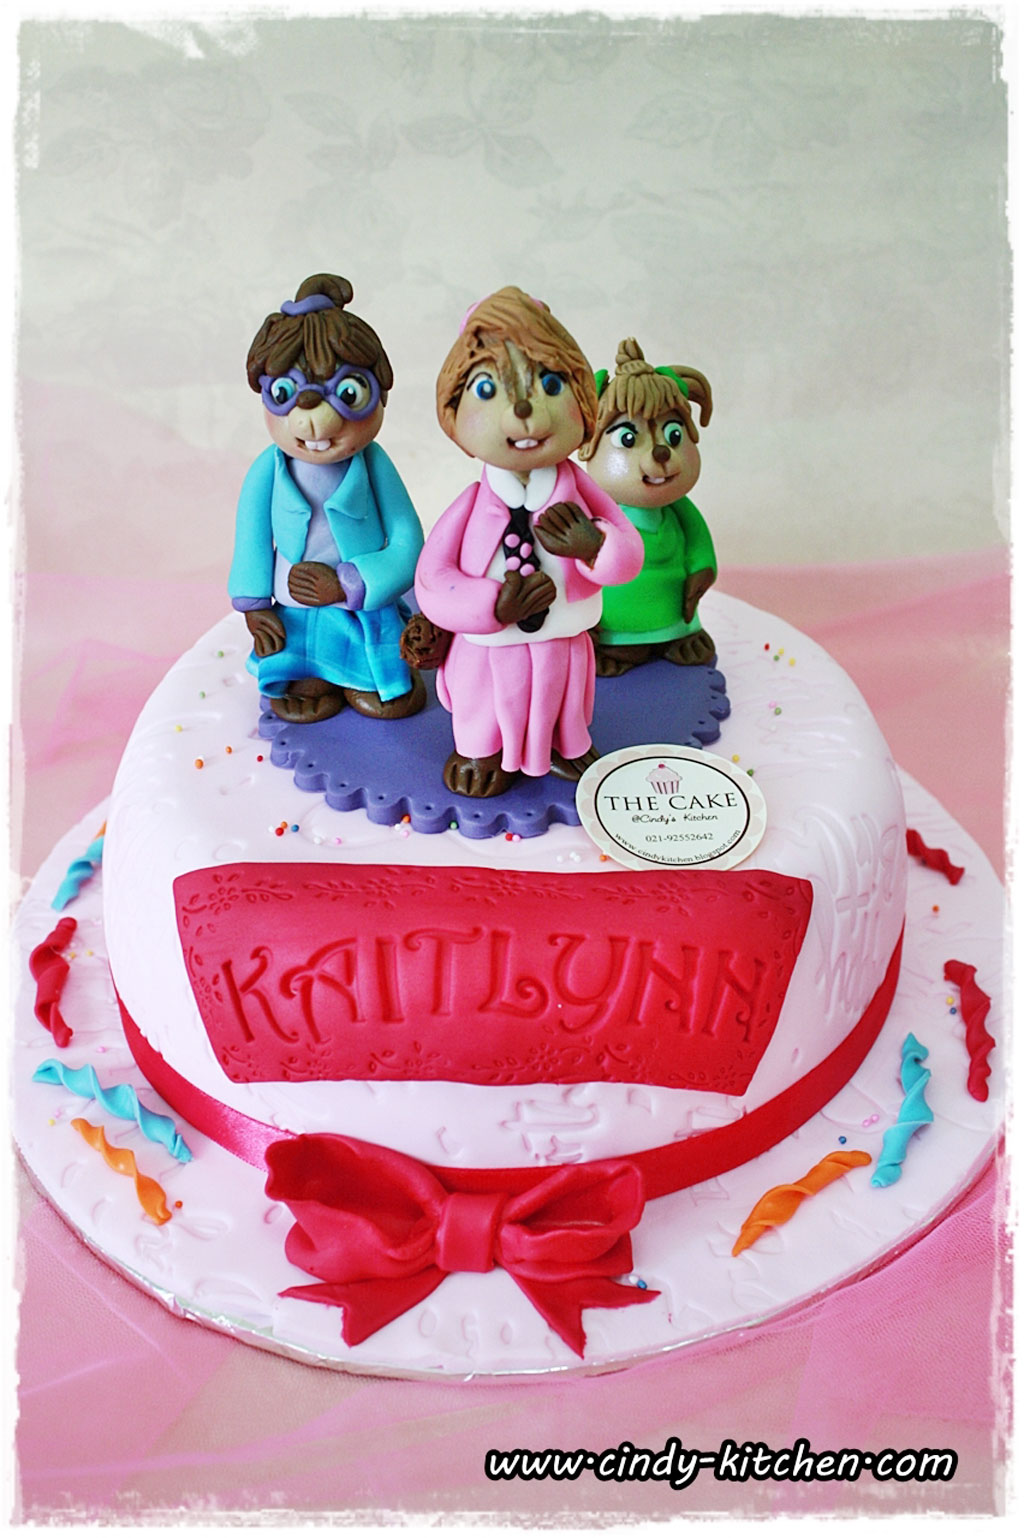 Cute Fondant Chipettes Birthday Cake Designs Birthday Cake Cake